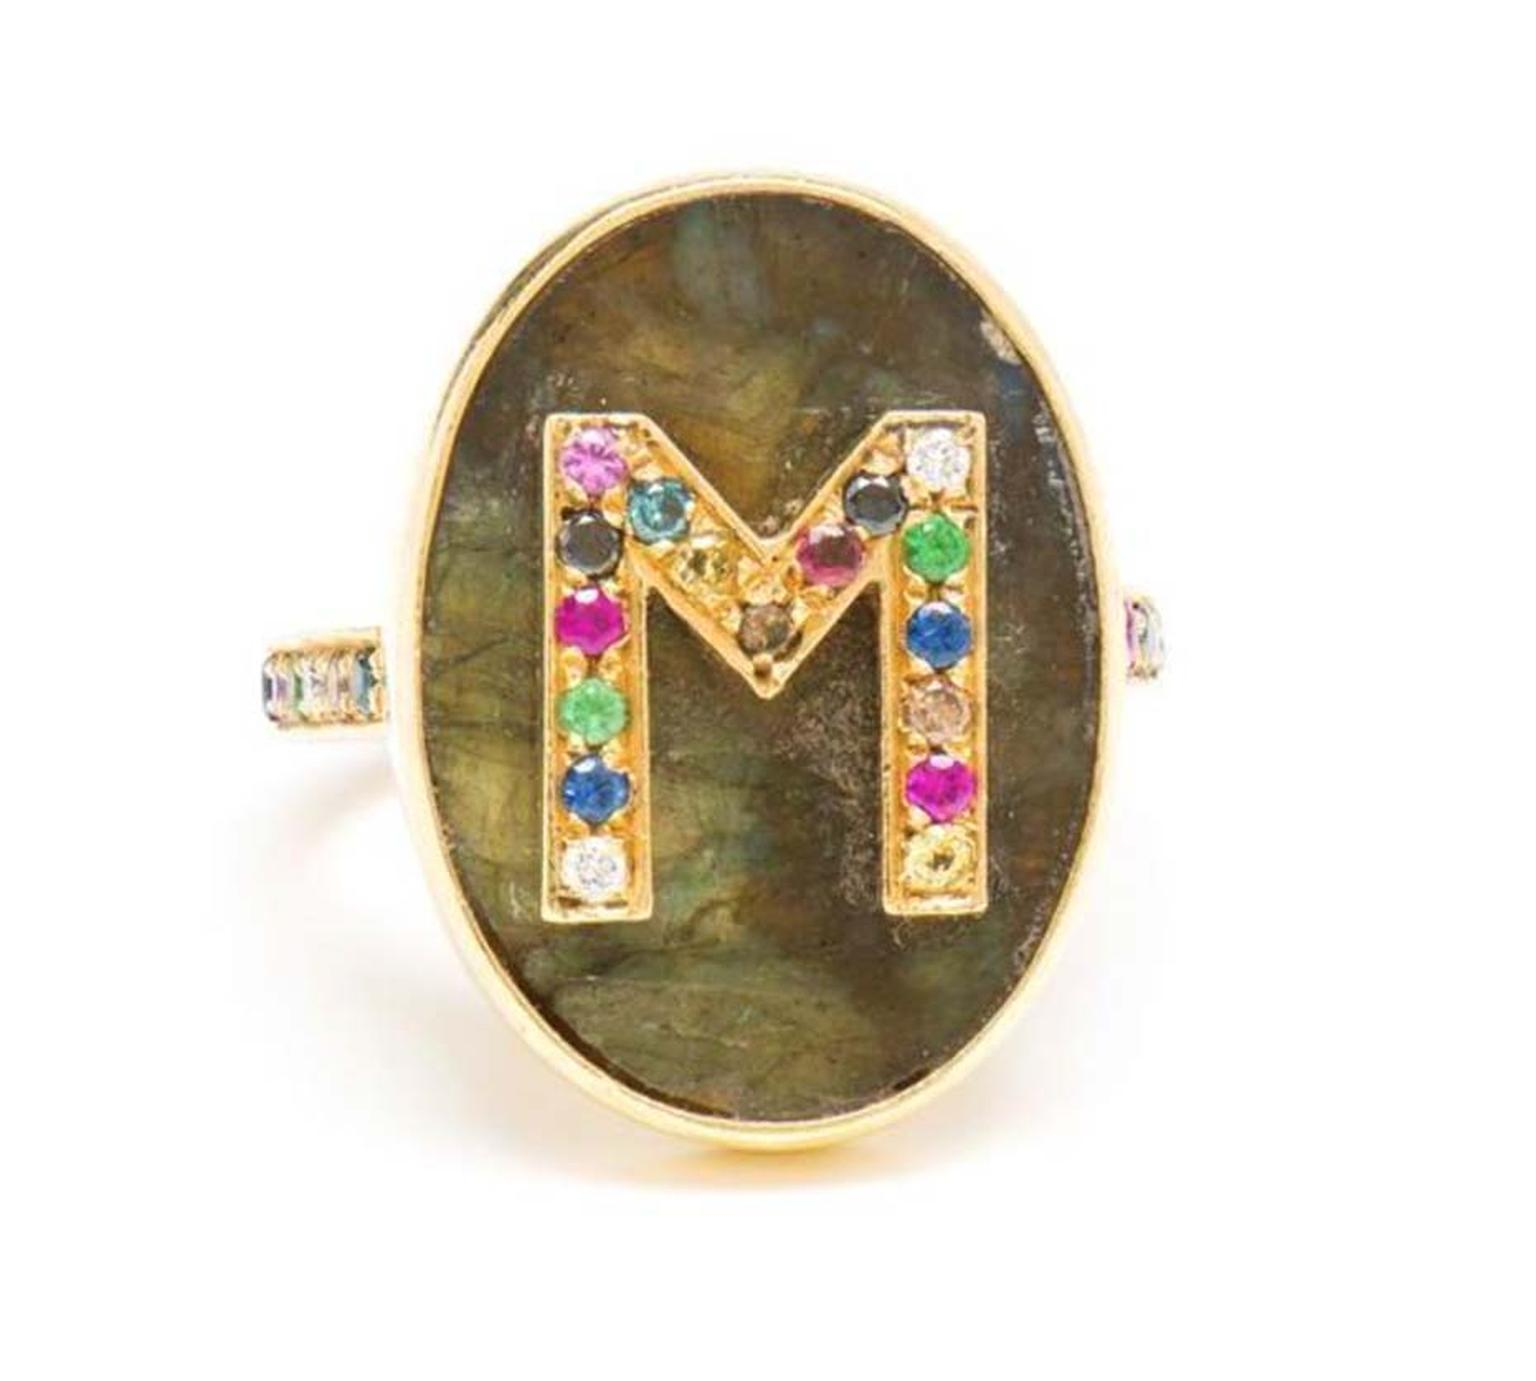 Personalised designer jewellery is a key trend for 2015, so spoil your mother with this bespoke Carolina Bucci high jewellery ring, featuring a gemstone-encrusted letter.